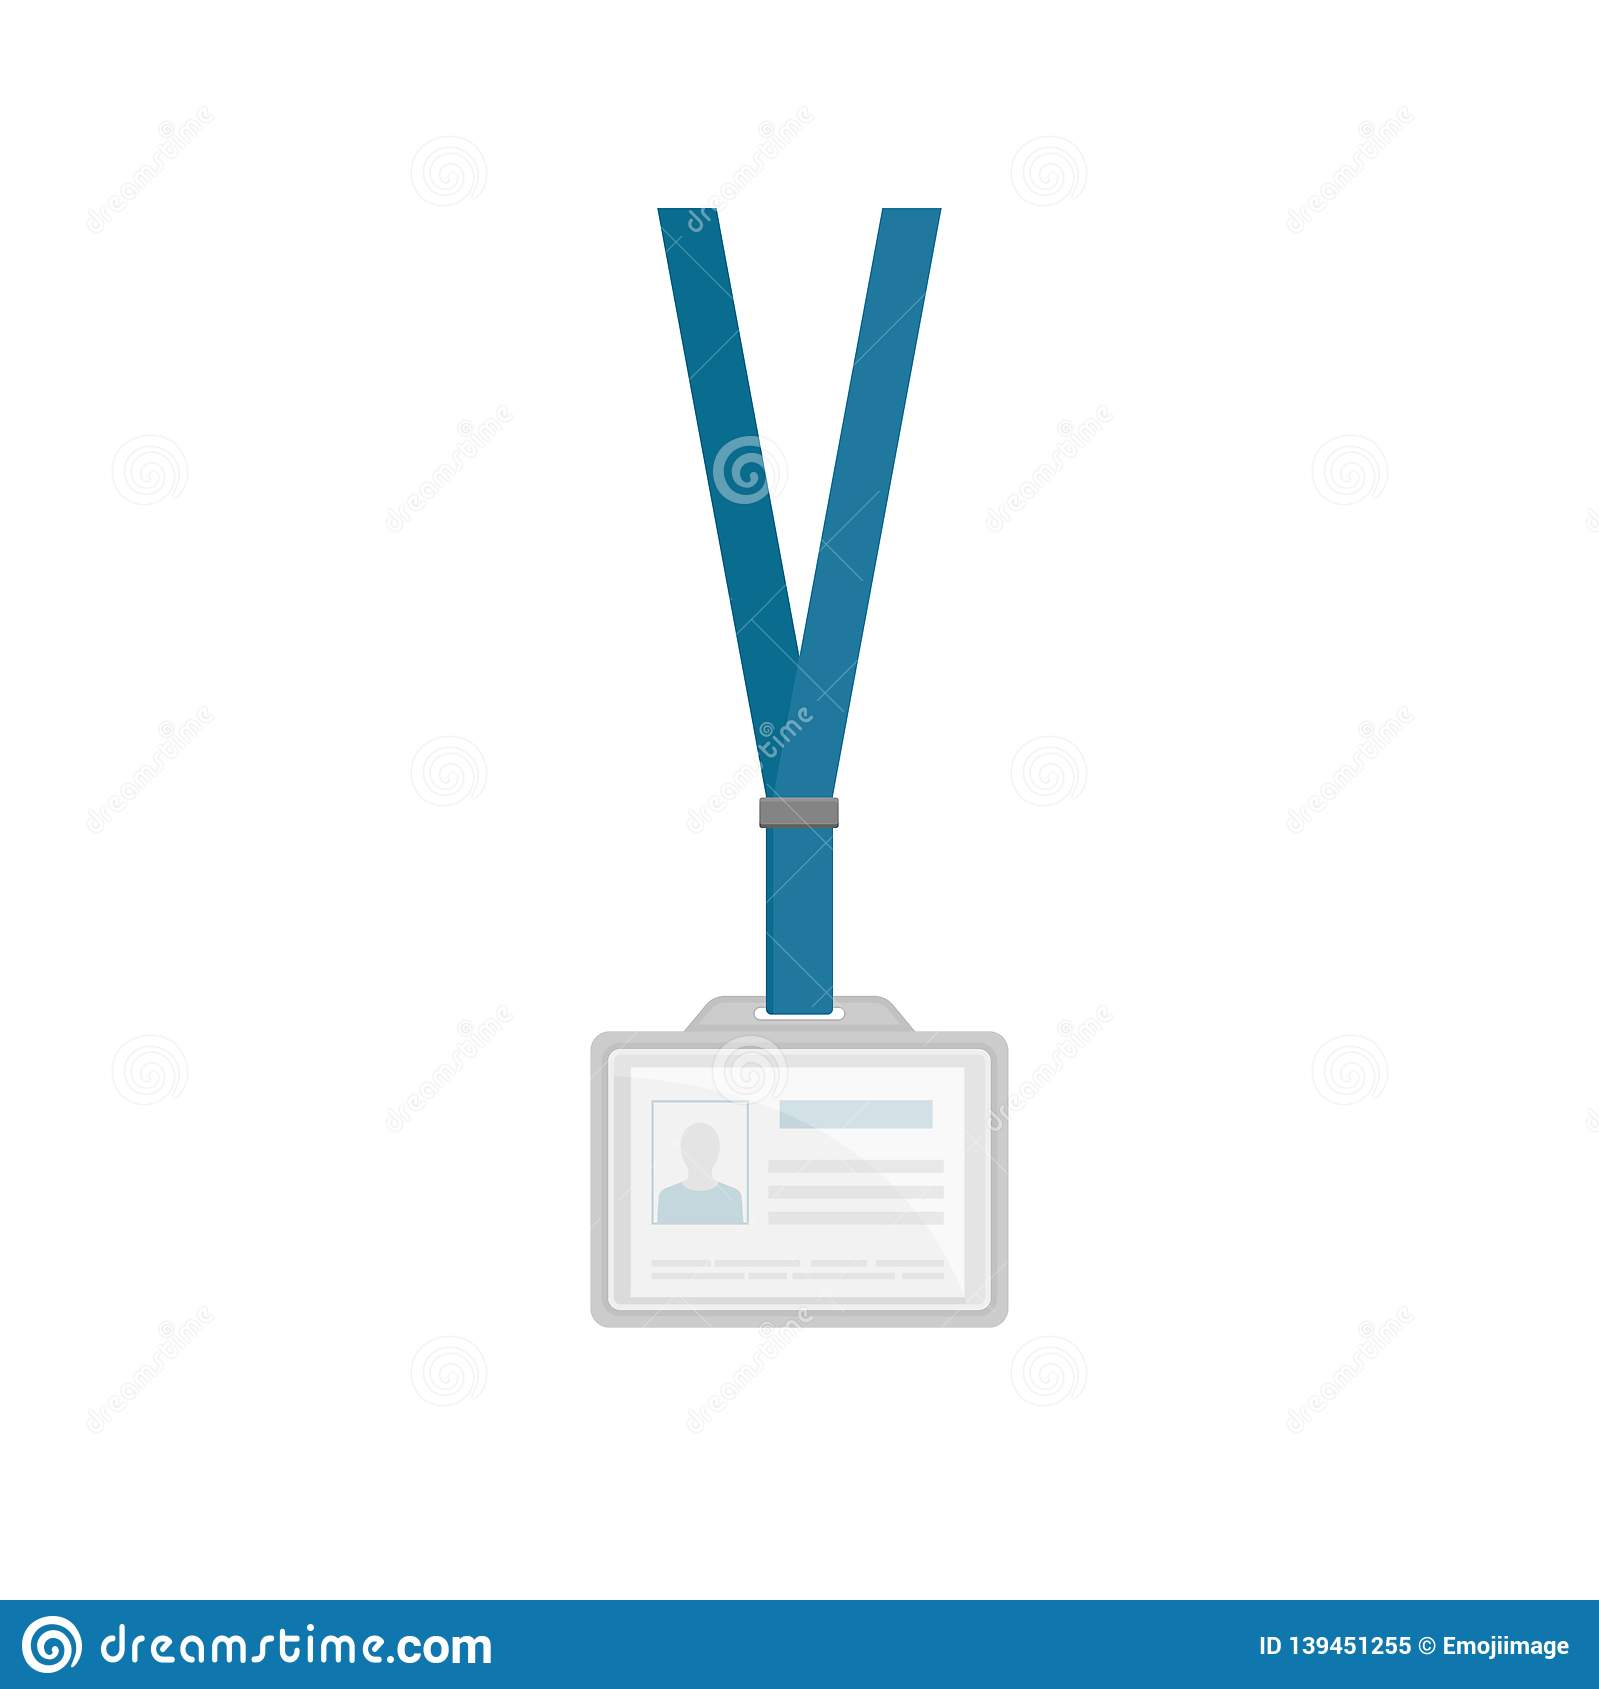 Id Card In Plastic Rectangular Holder With Blue Neck Lanyard Employees Identification Badge Template Flat Design Stock Vector Illustration Of Identity Graphic 139451255